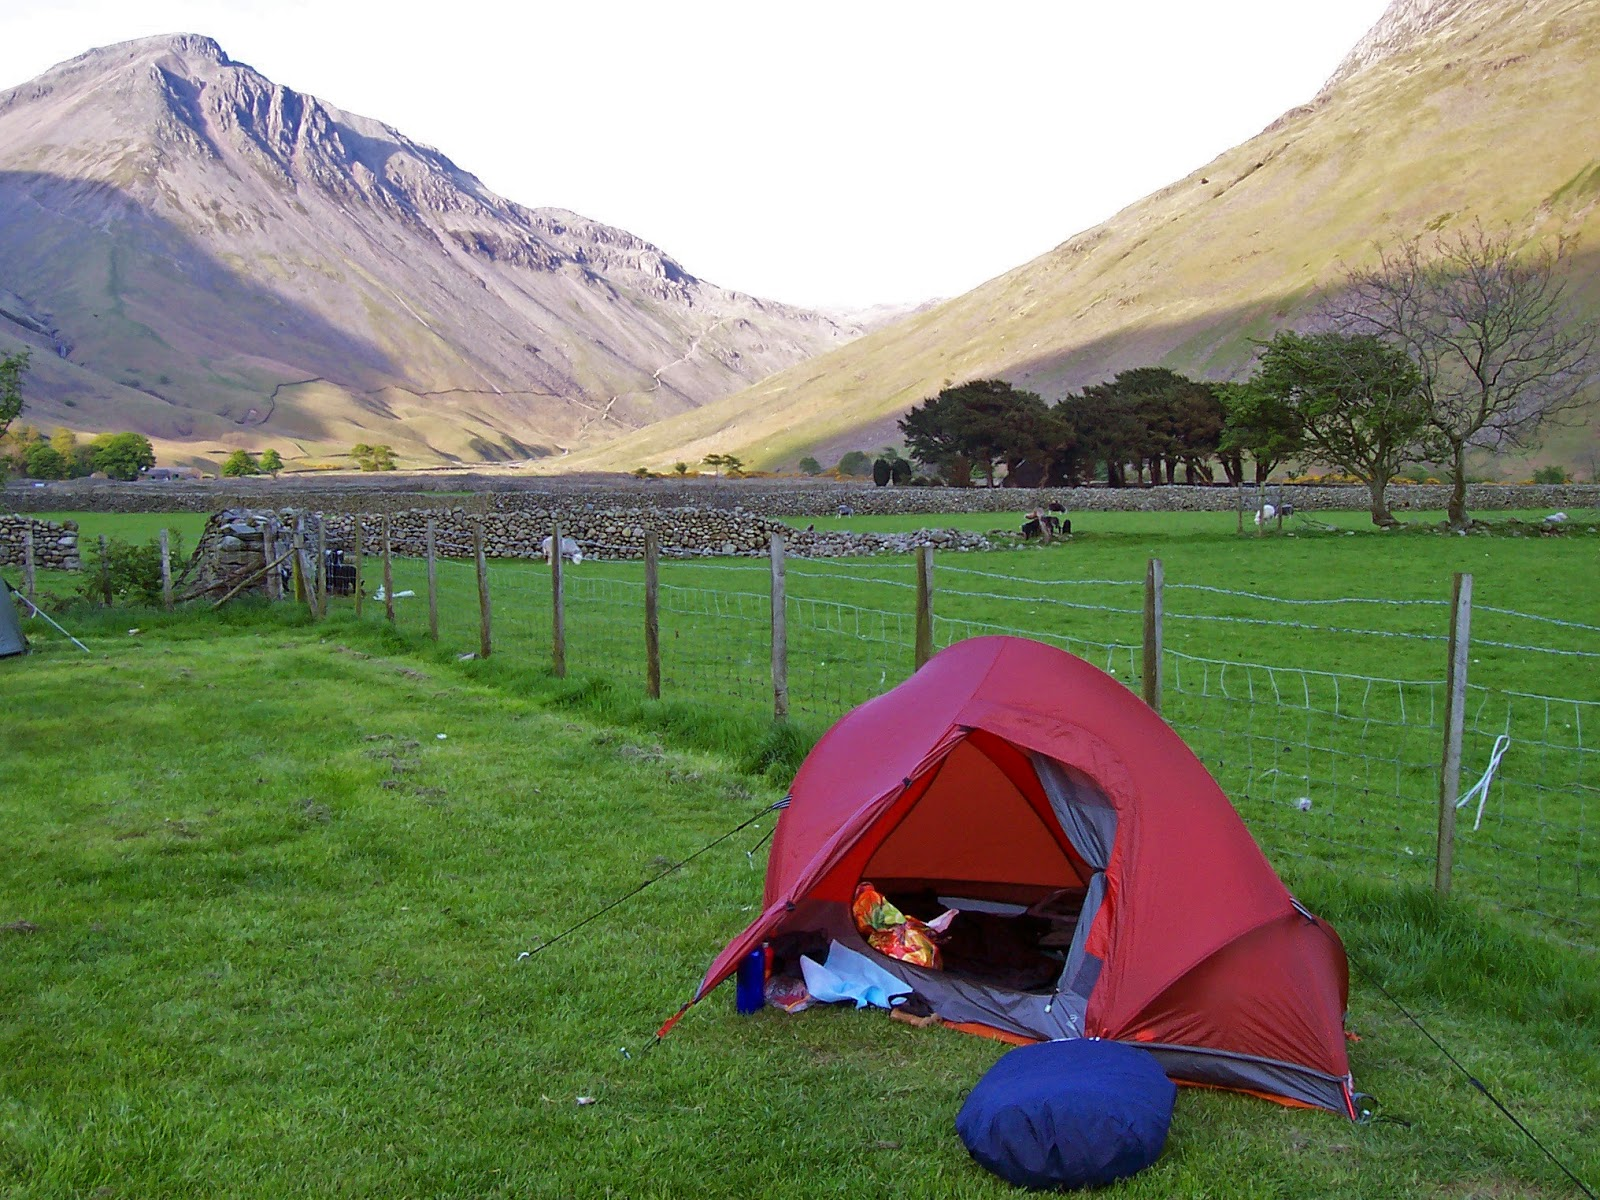 This tent was a TNF Particle 13 u2014 not a bad tent but heavy by modern standards and tricky to get a perfect pitch. & Ten years ago   Alex Roddie: editor and outdoor writer